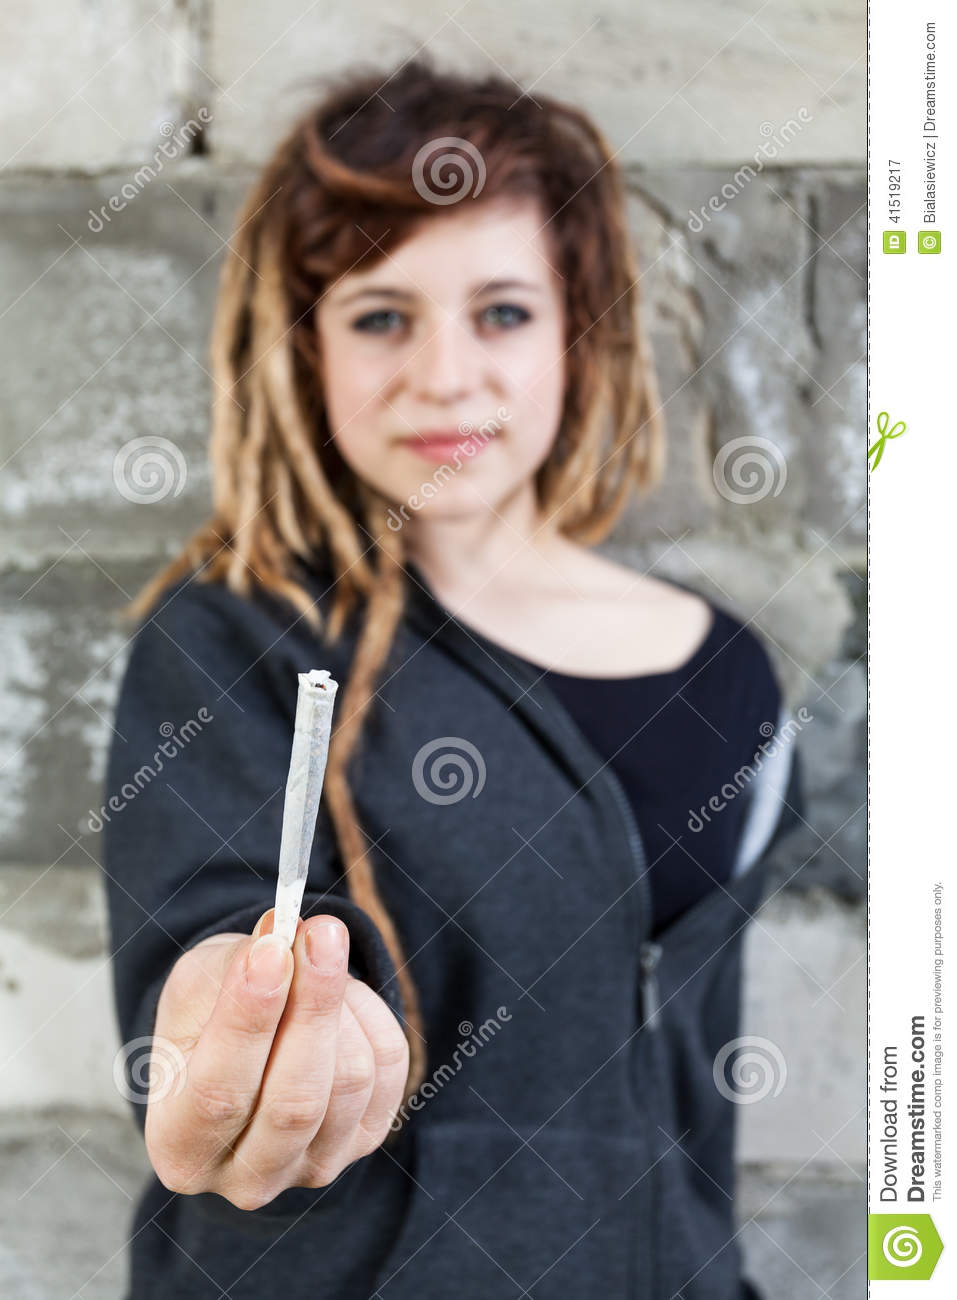 woman smoking weed and fucking com